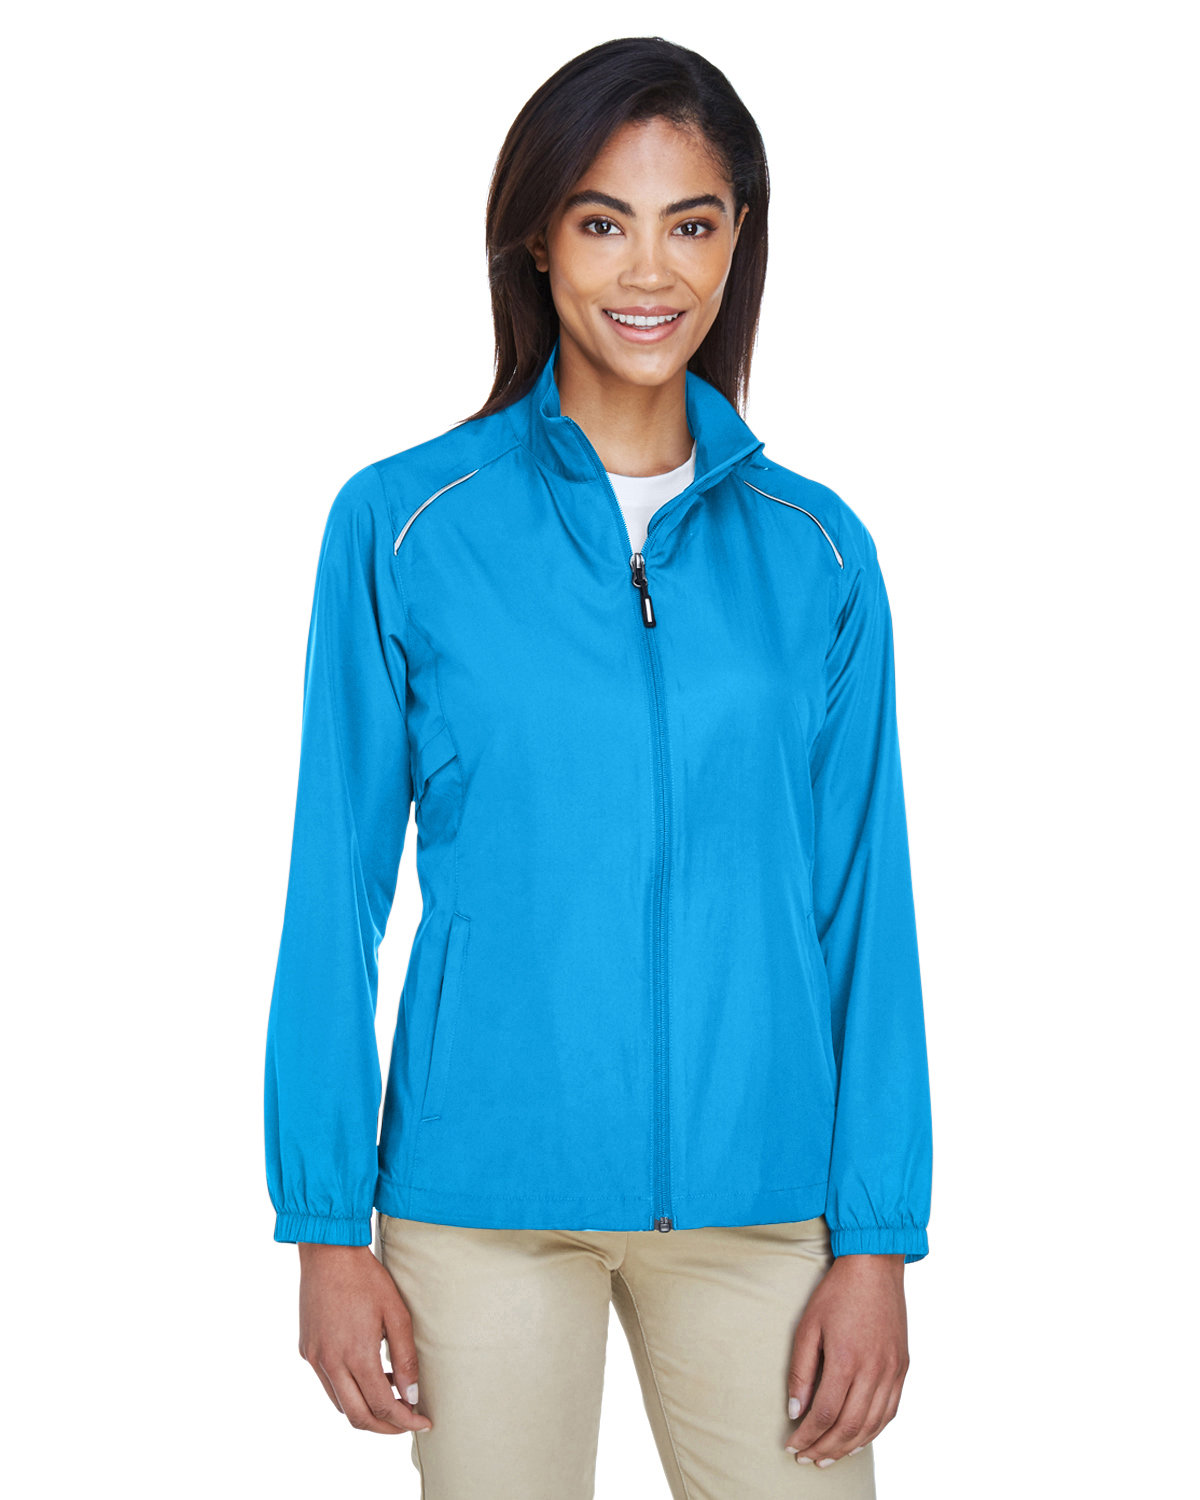 Core 365 Ladies' Motivate Unlined Lightweight Jacket ELECTRIC BLUE